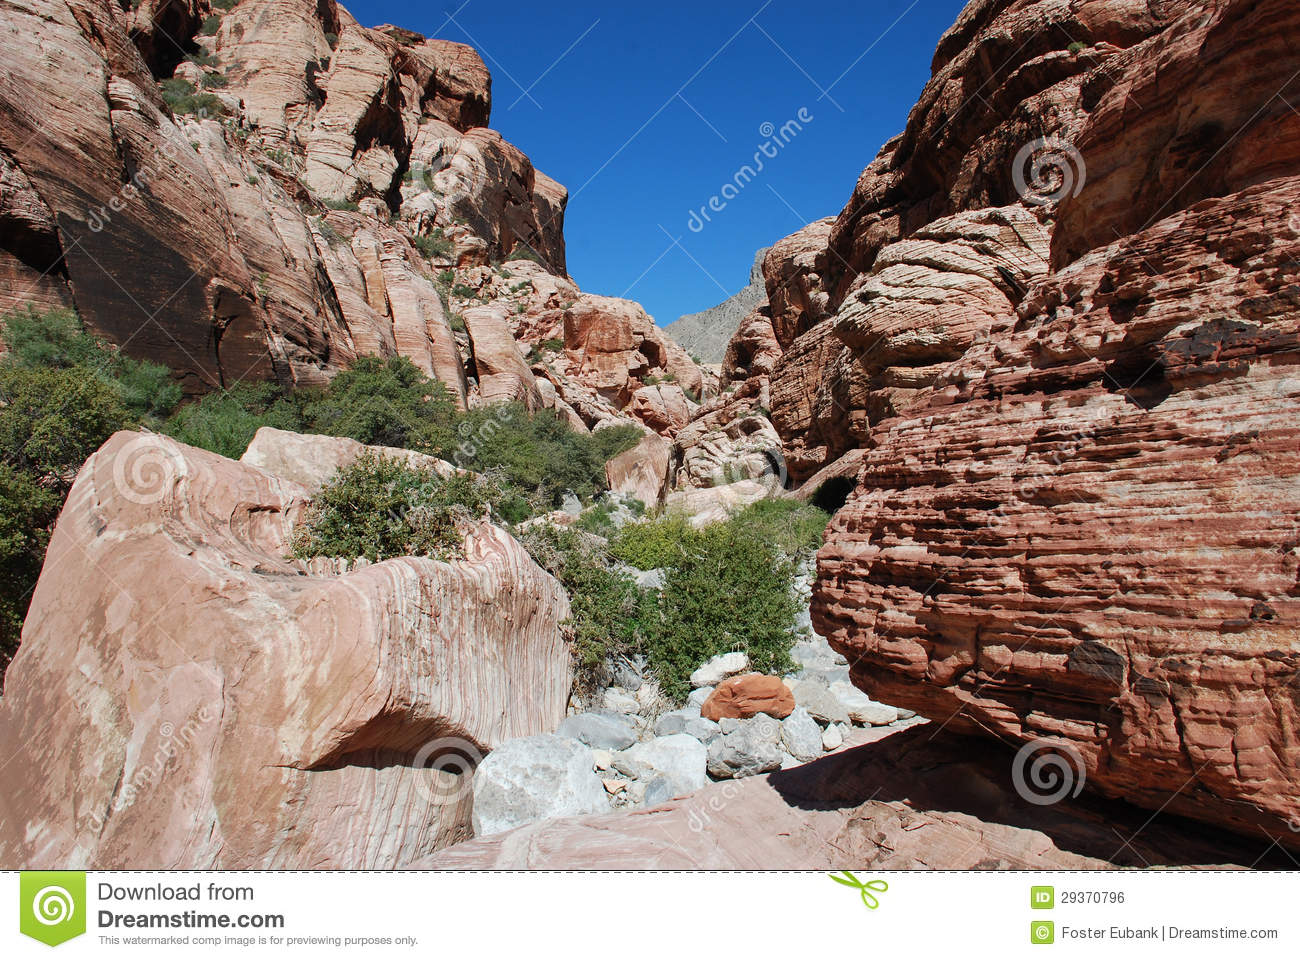 Aztec Sand Stone Rock Formation Near Red Rock Canyon